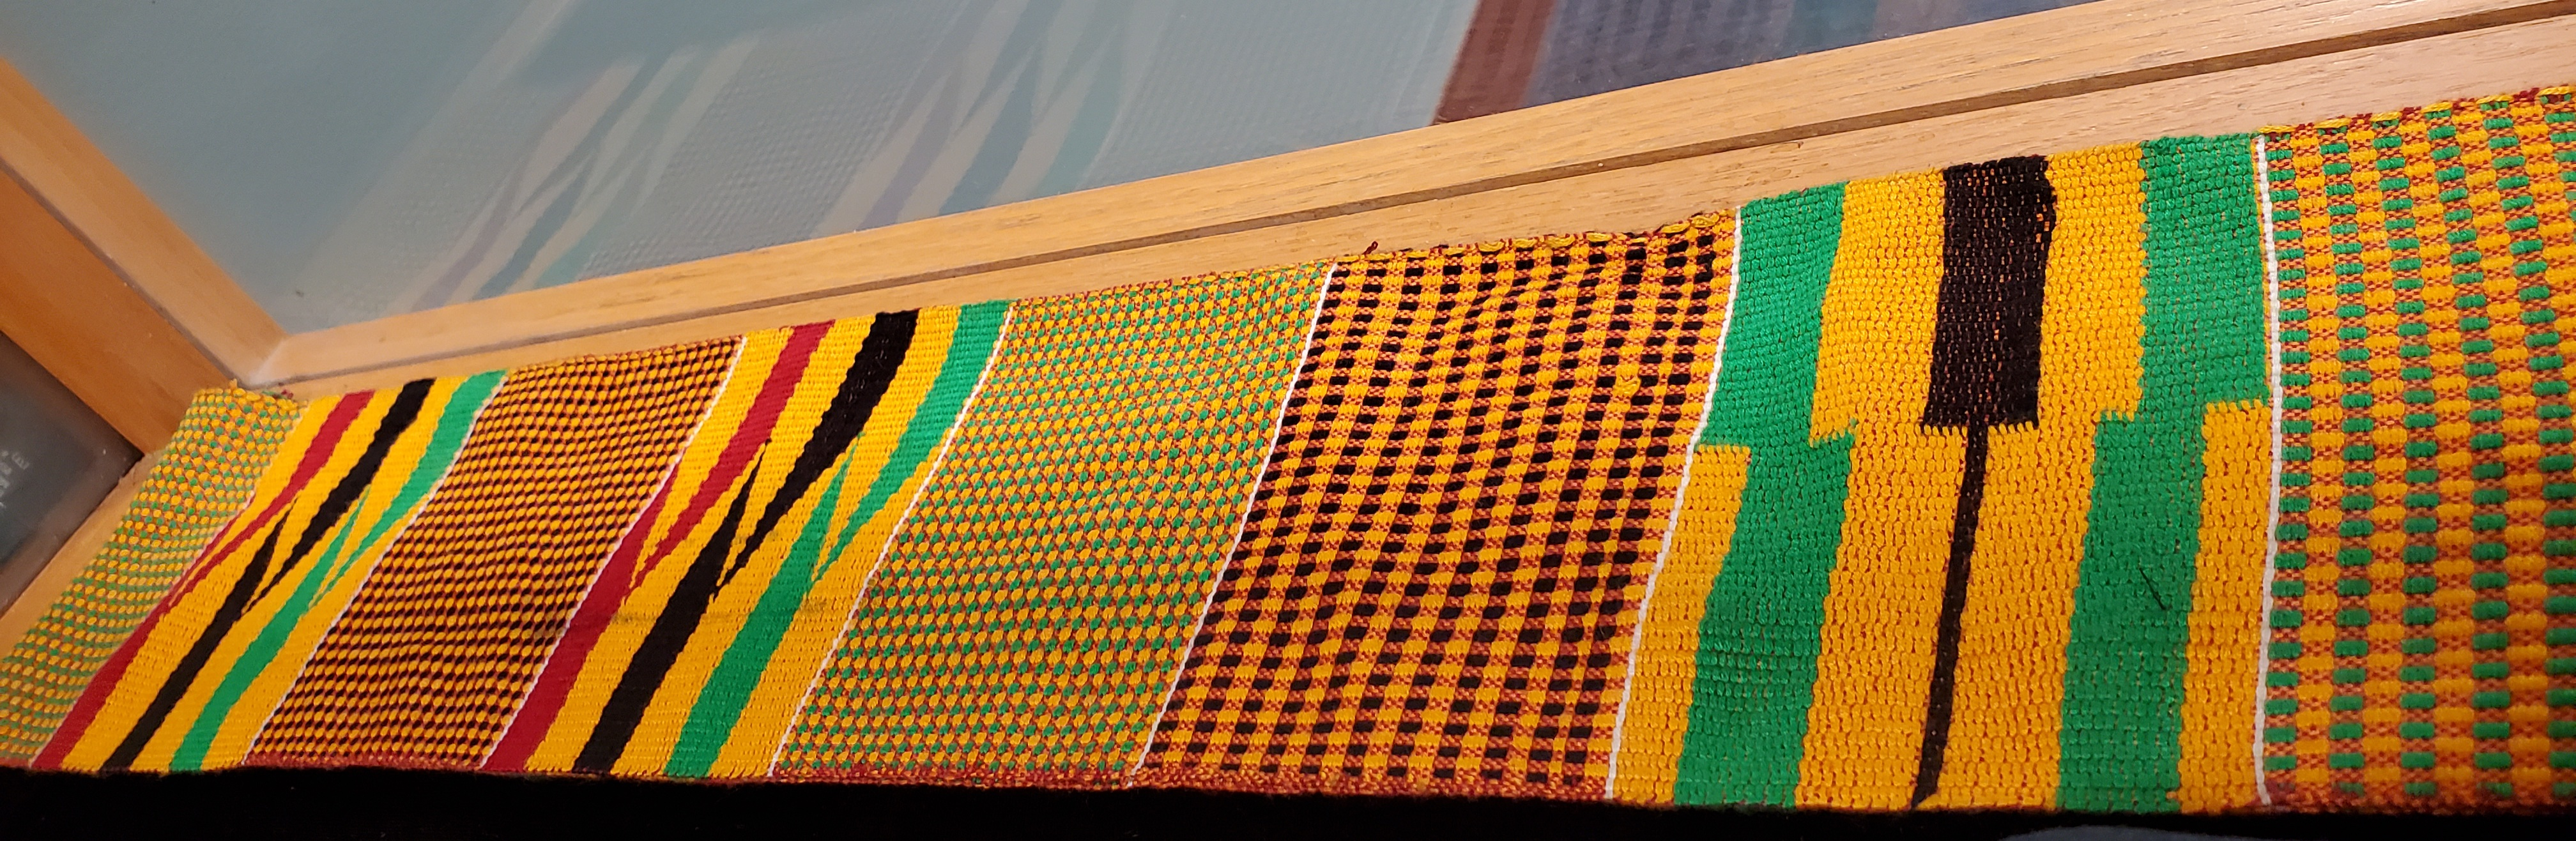 Commencement sash for students of African descent. It has different African prints in yellows, reds, greens, and blacks.